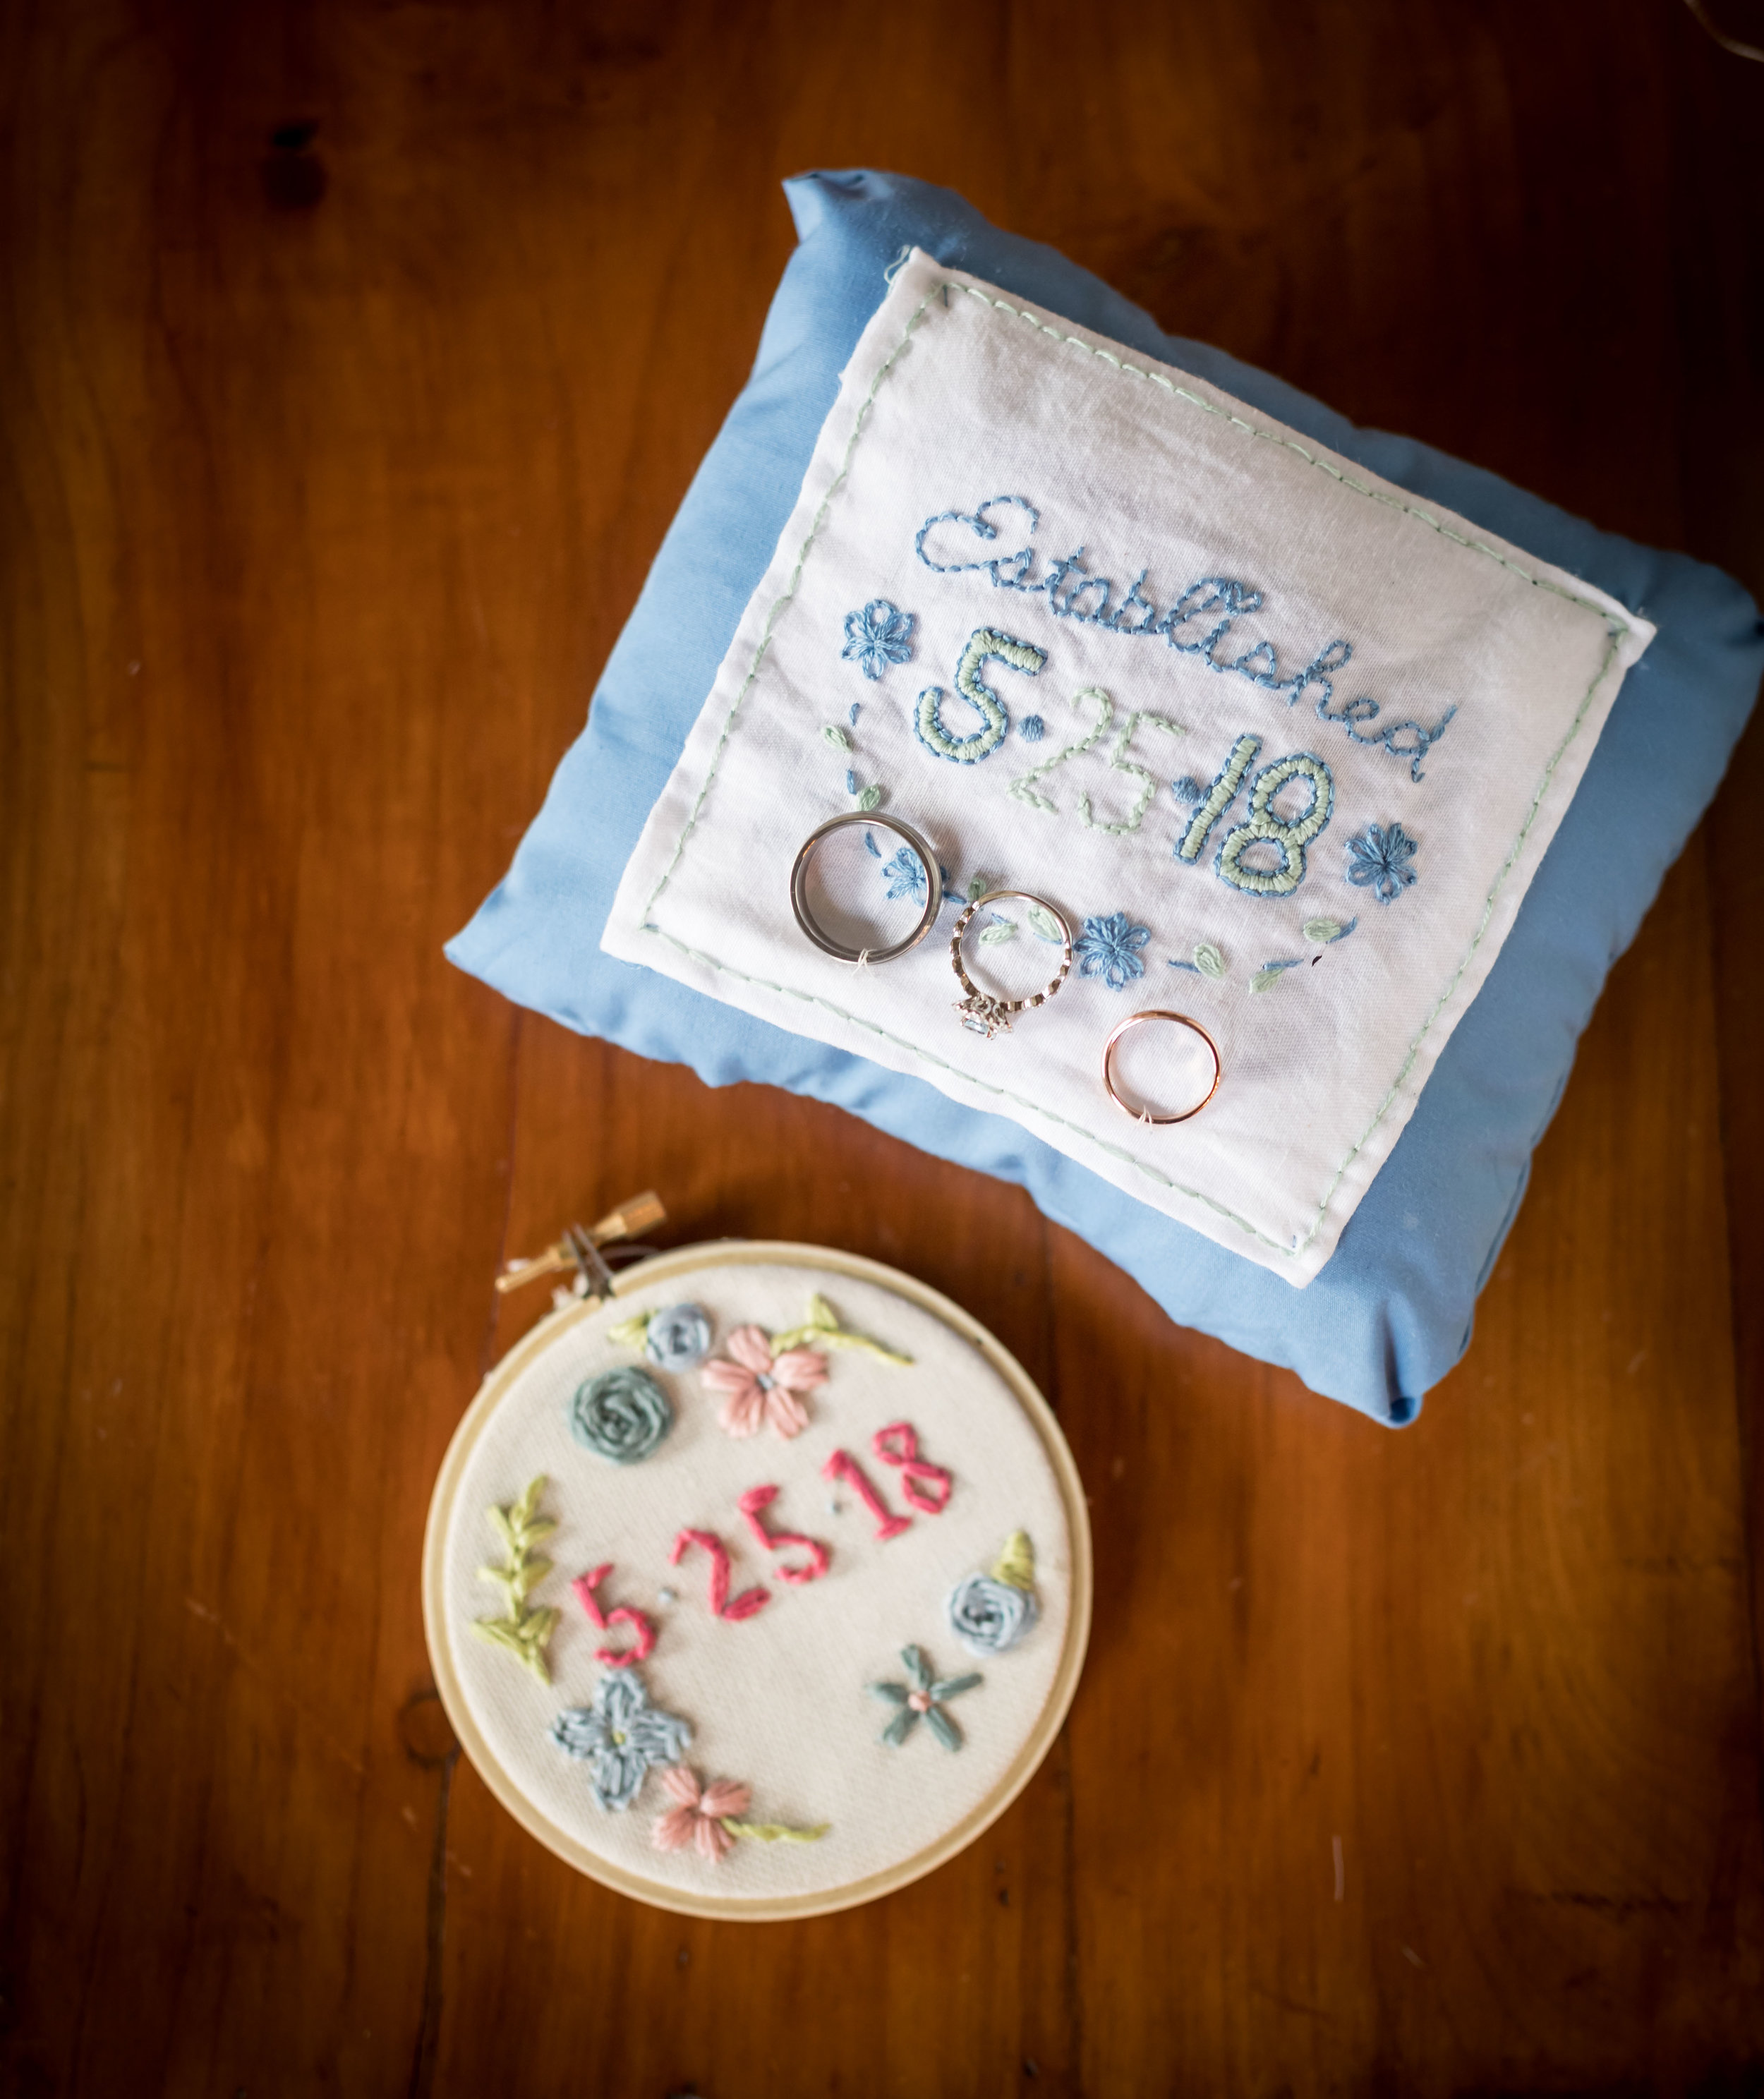 Southern Fete, Southern Wedding, Wedding rings, Embroidered Pillow